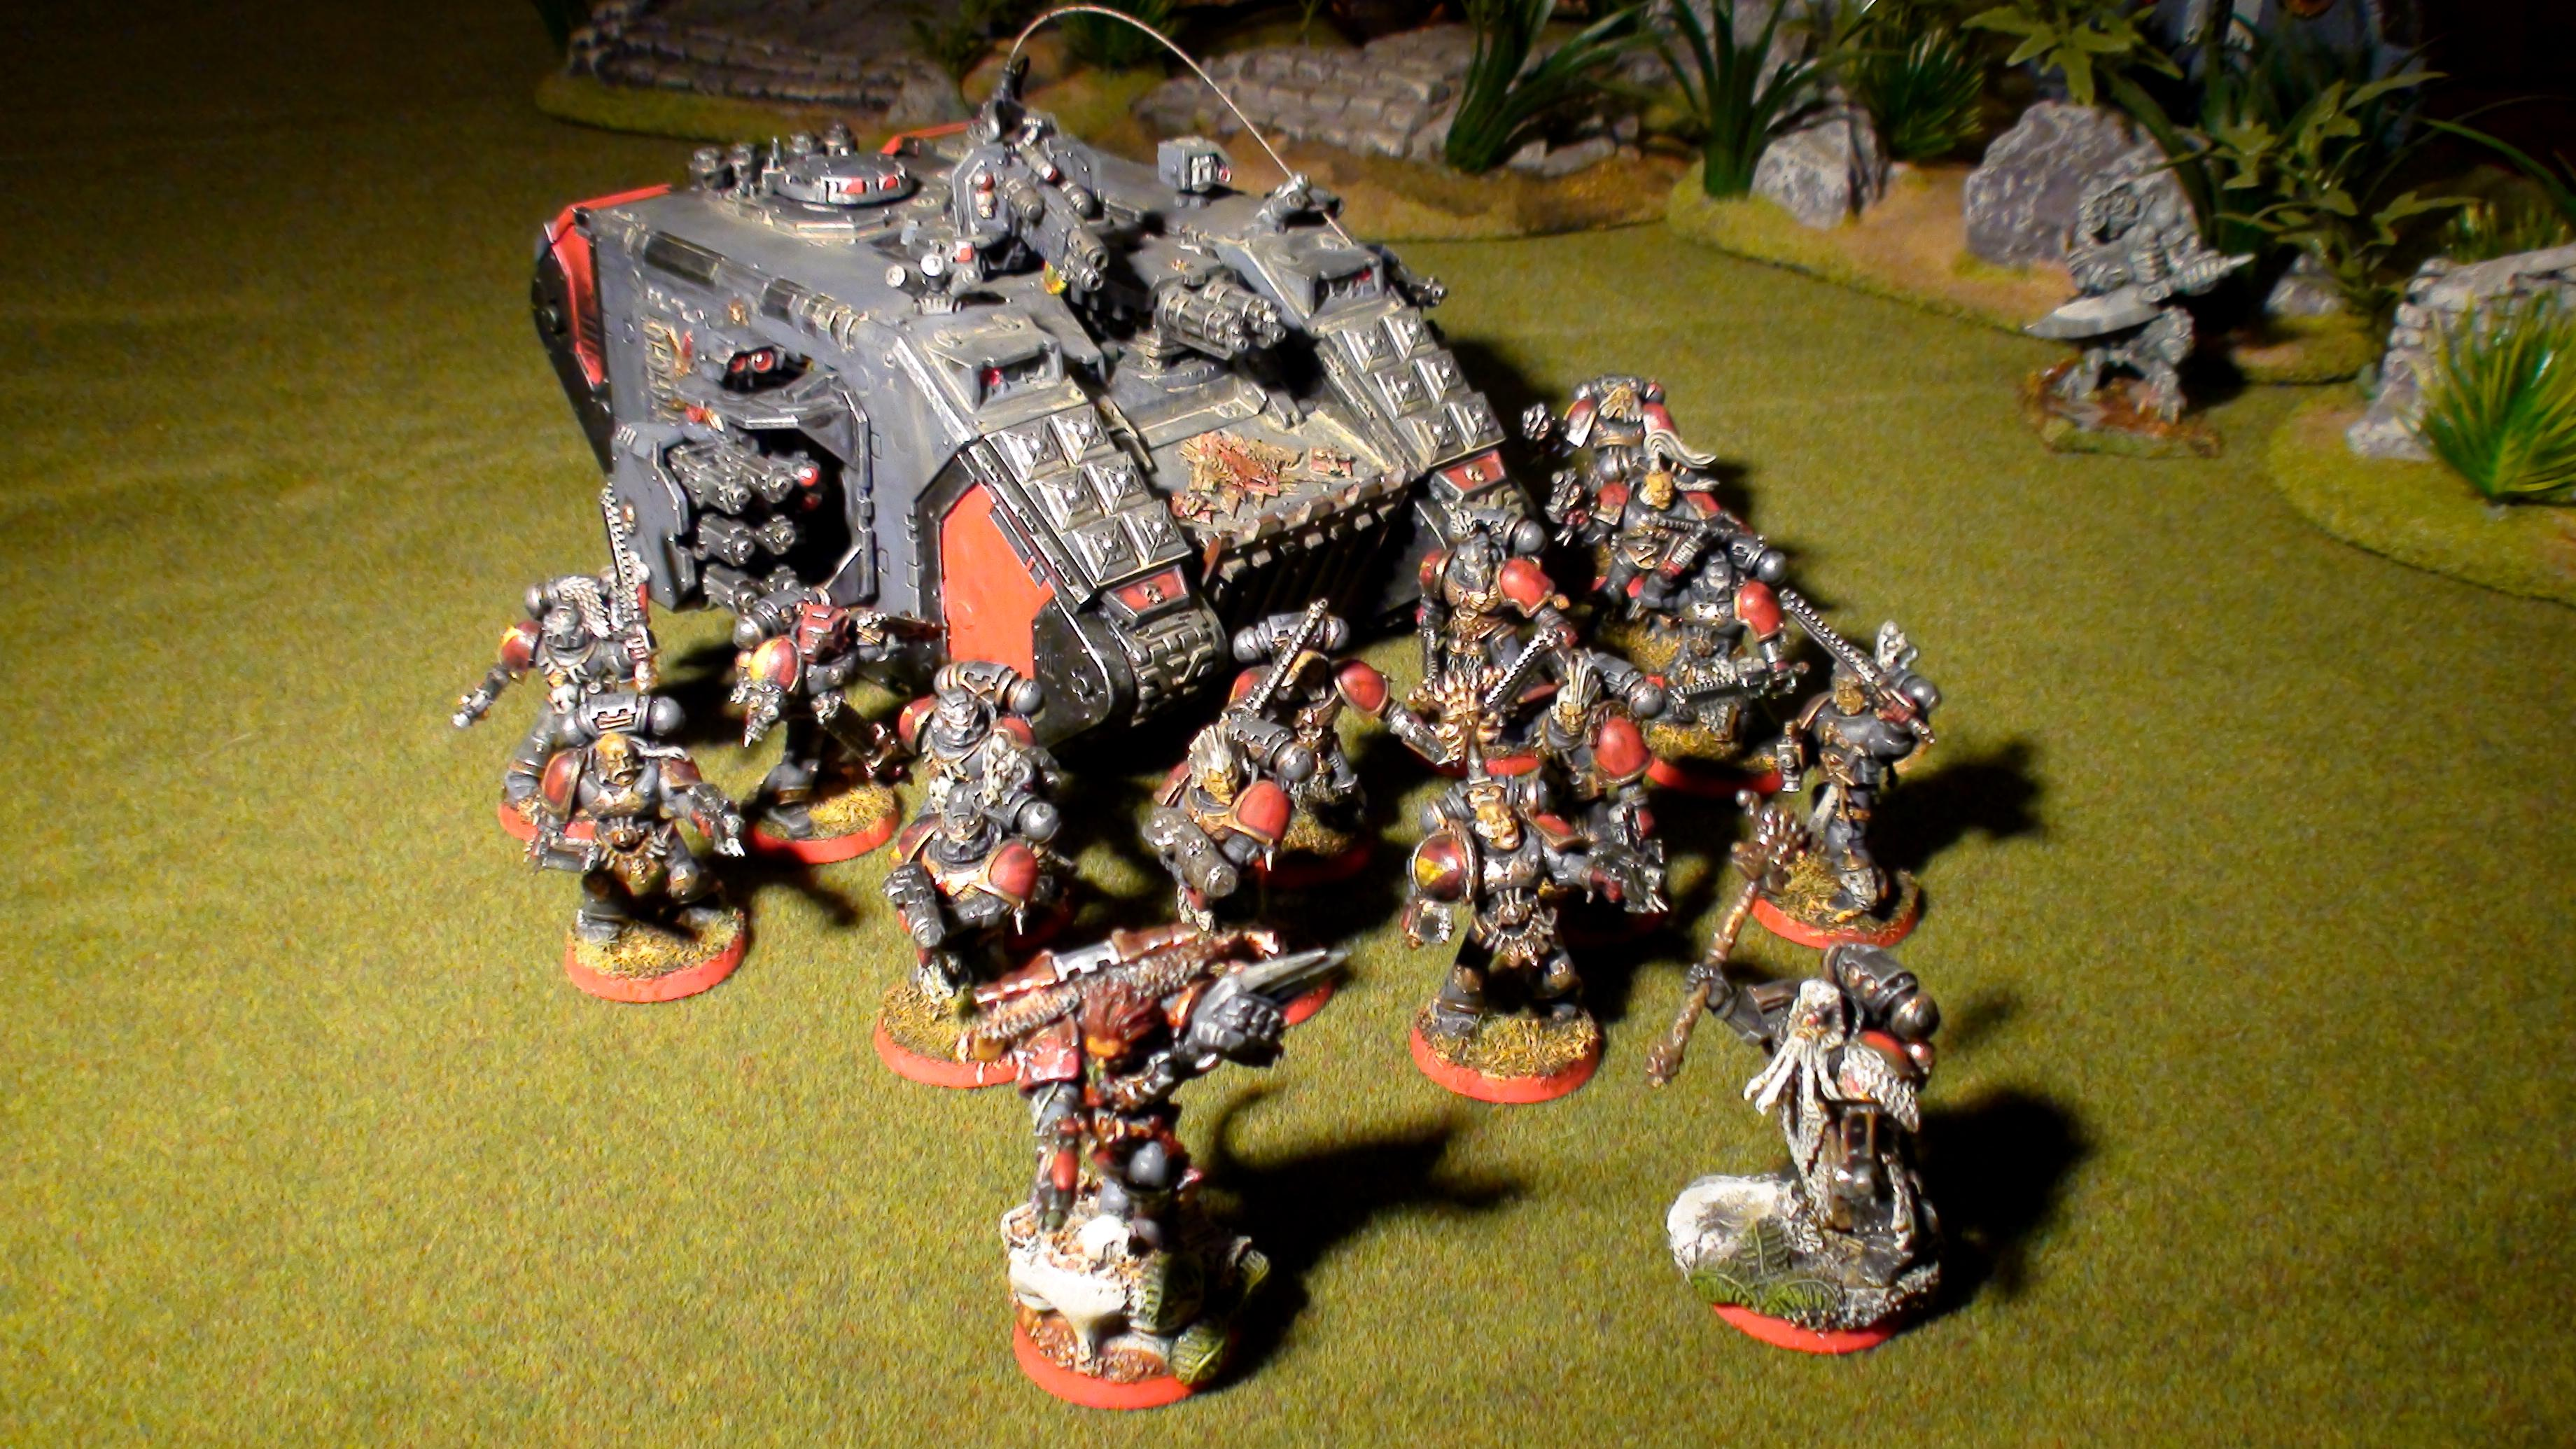 Army, Assault, Awesome, Collection, Drop Pod, Imperial Guard, Land Raider, Painted, Space Marines, Space Wolves, Vindicator, Warhammer 40,000, Warhammer Fantasy